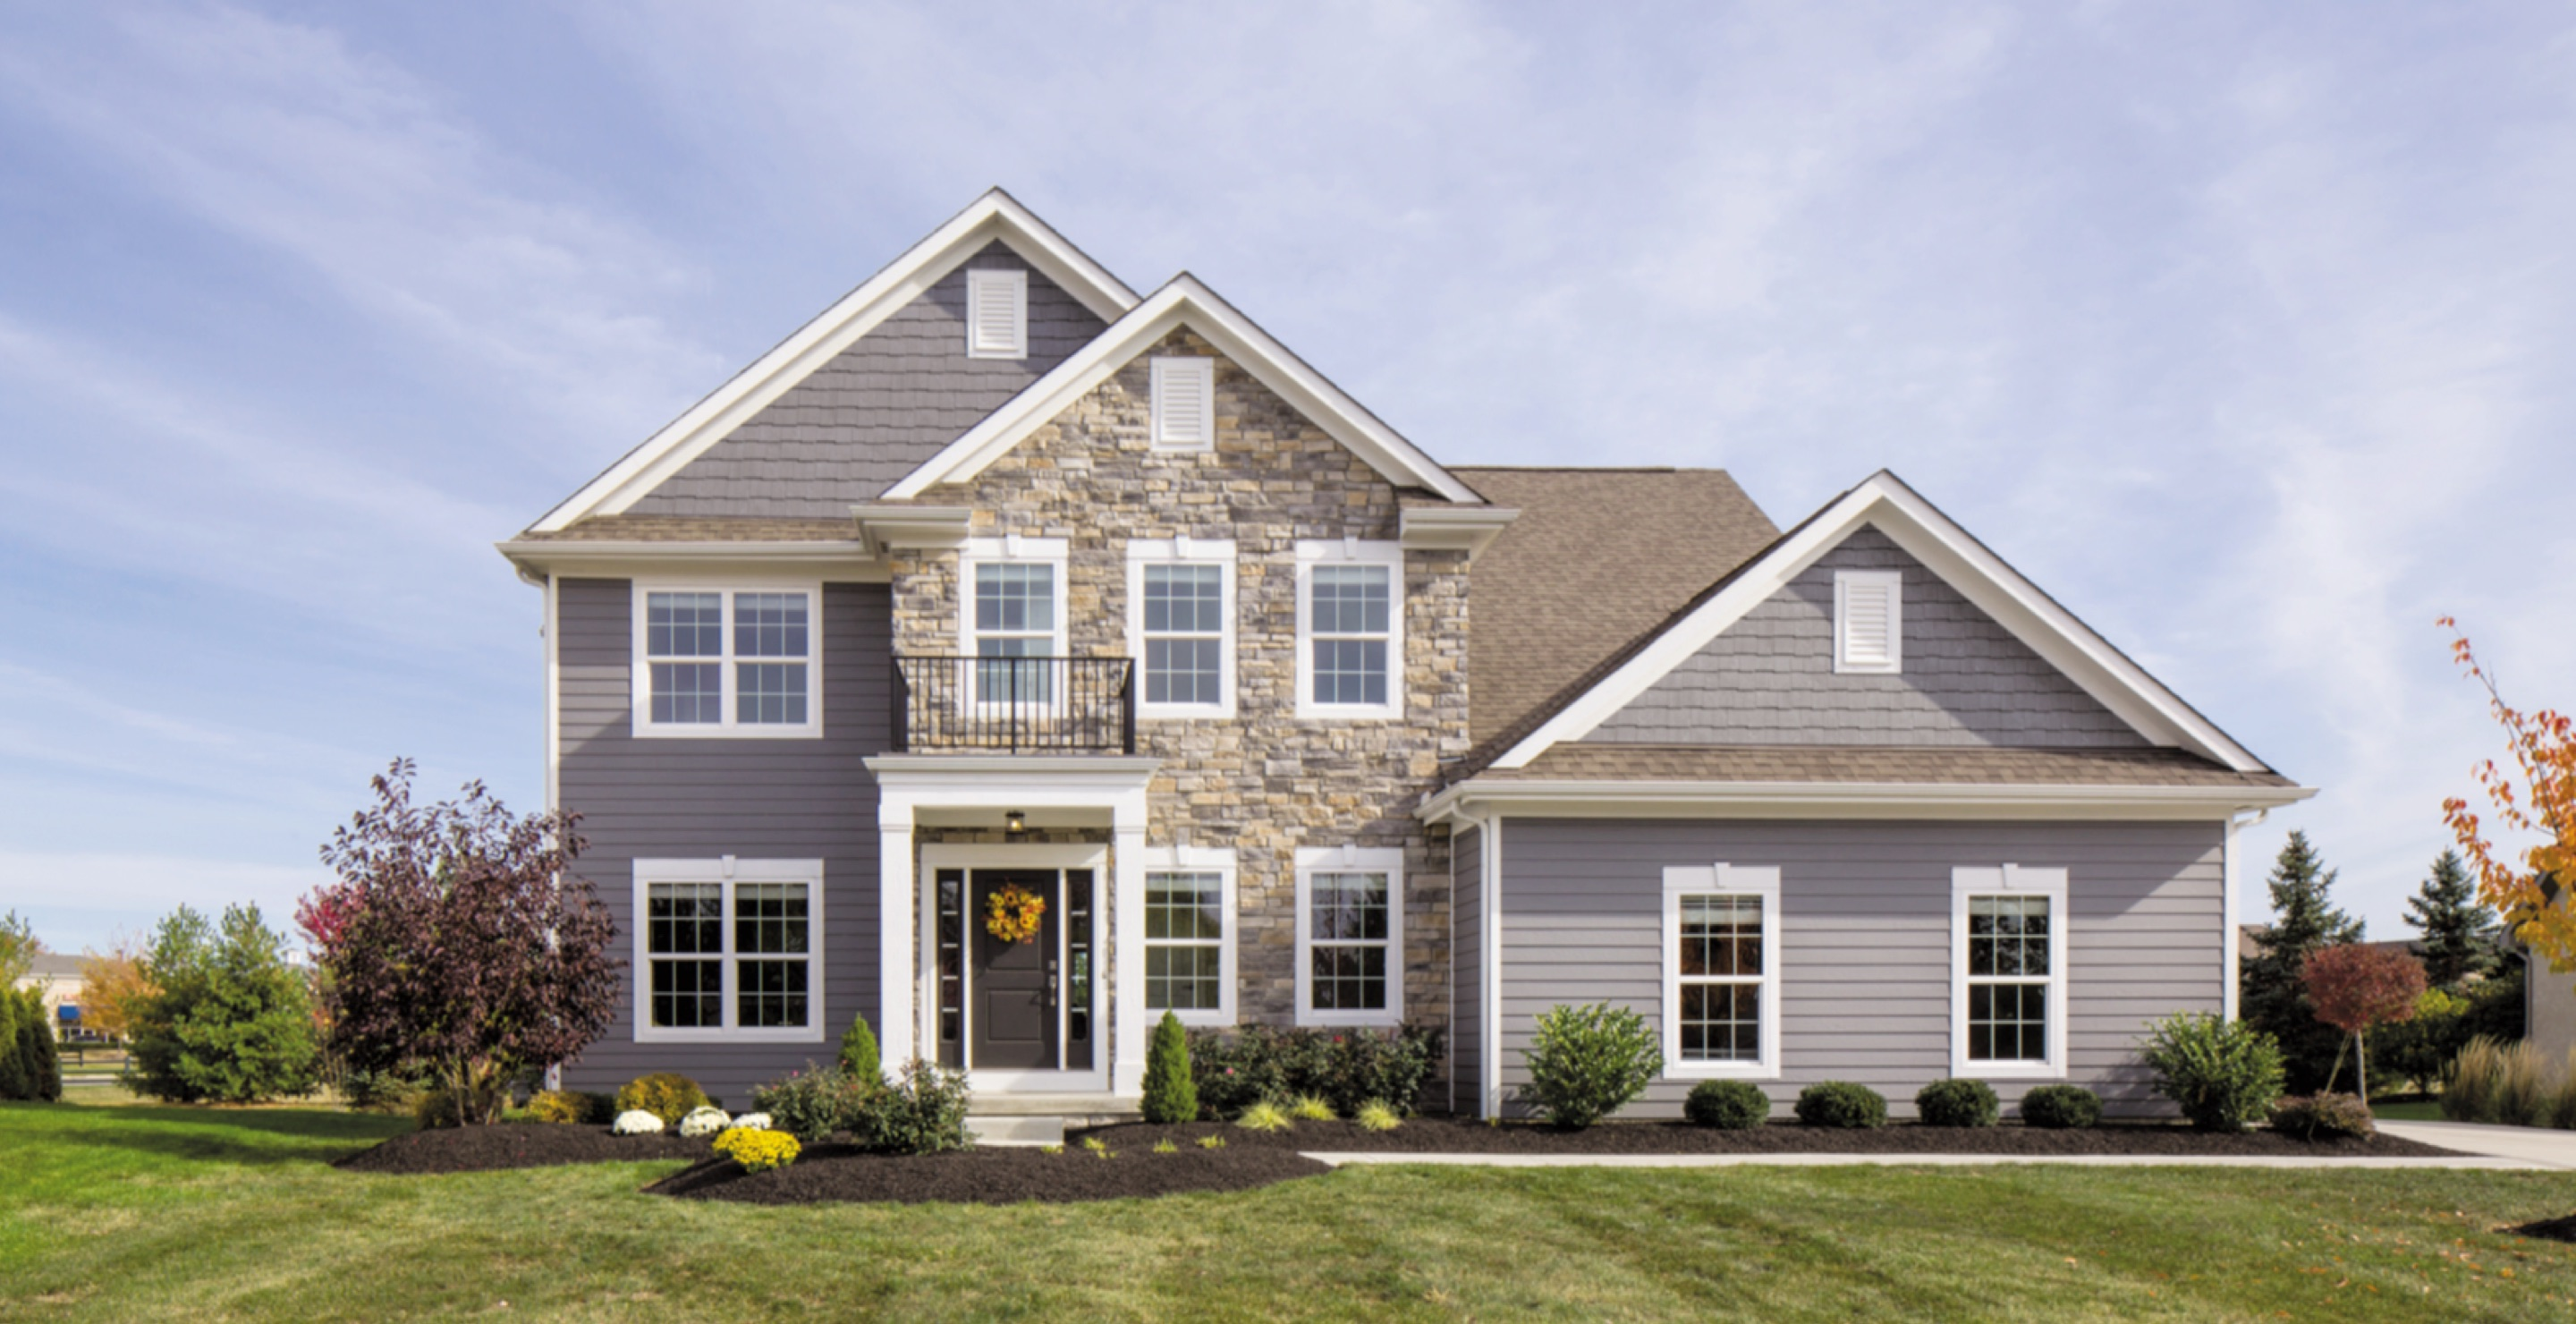 How to Harmonize Your Home Exterior's Color Palette - Curb Appeal